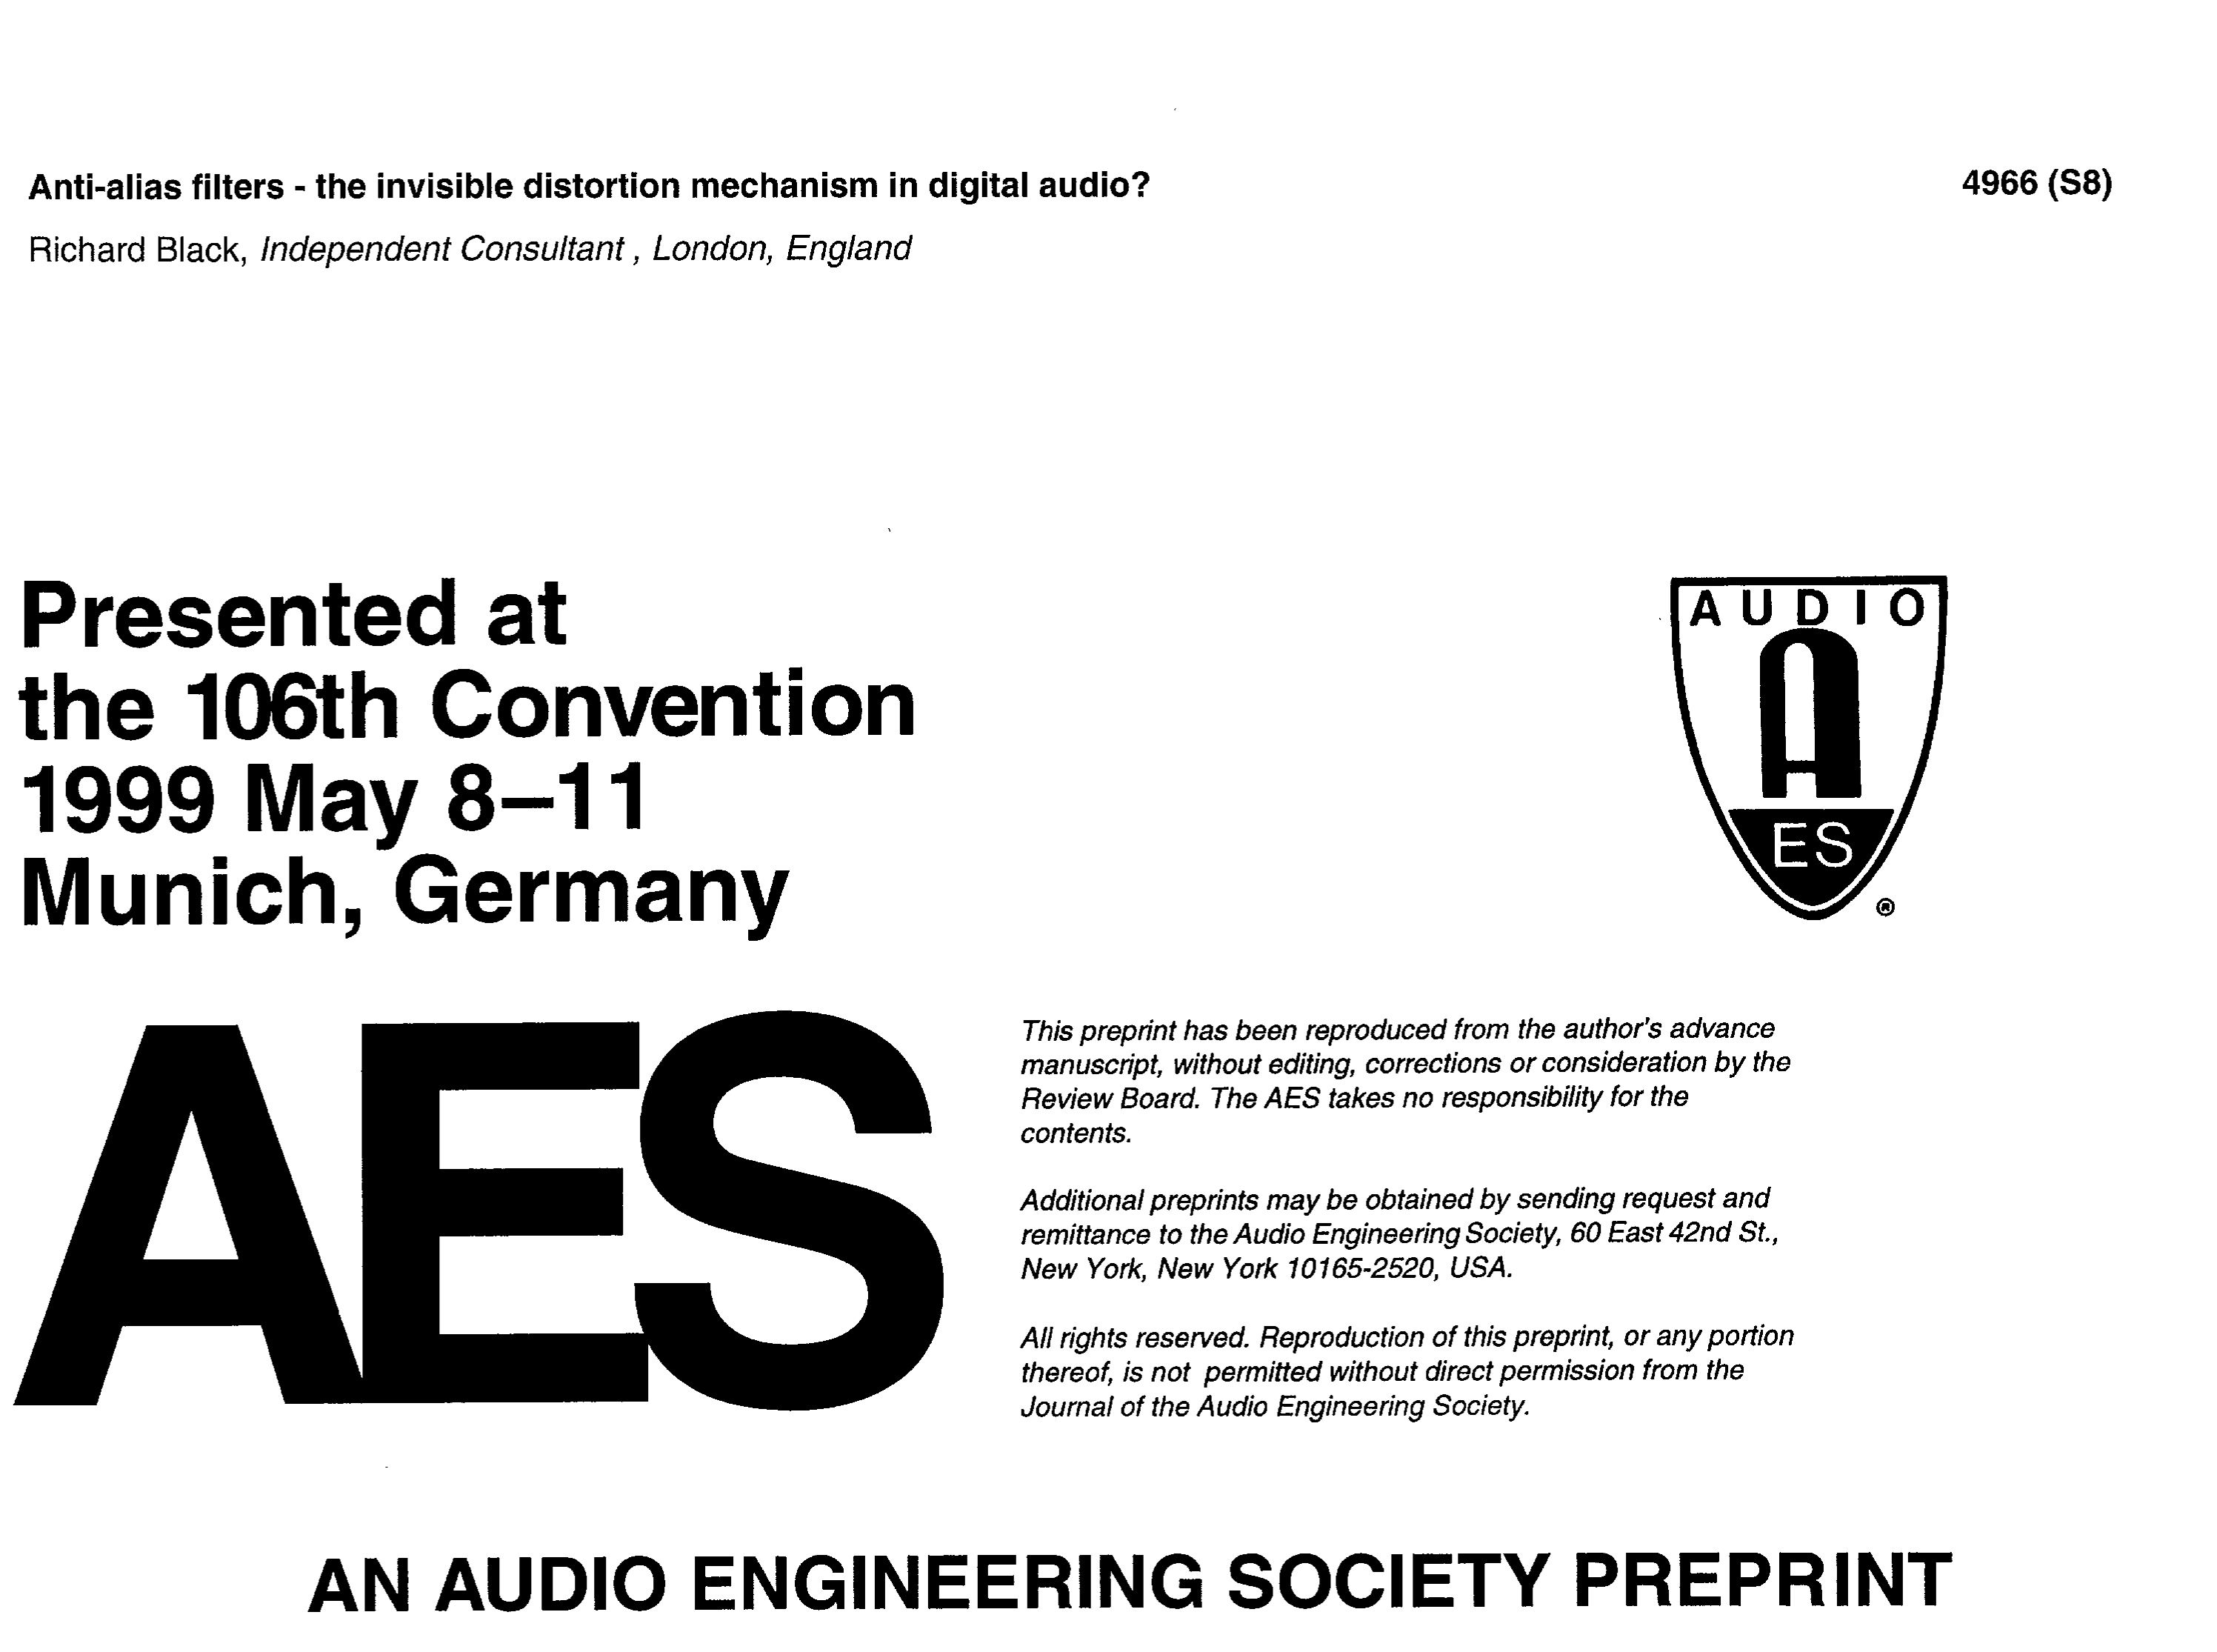 Aes E Library Anti Alias Filters The Invisible Distortion Low Audio Range Oscillator Mechanism In Digital